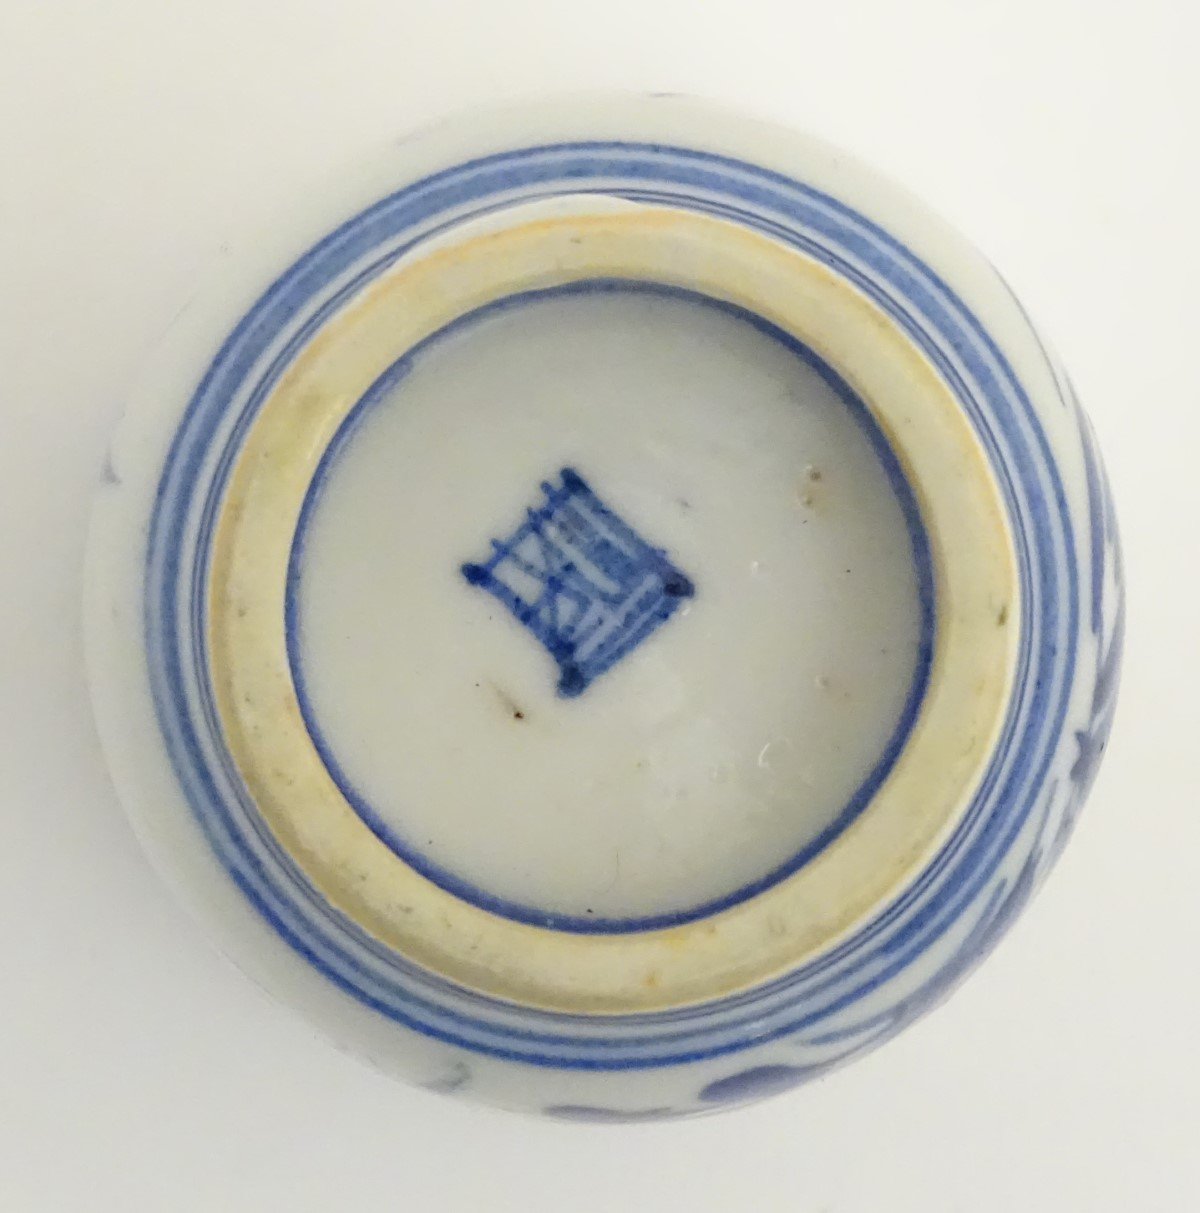 Lot 25 - A Japanese blue and white pot with hand painted floral and foliate decoration.